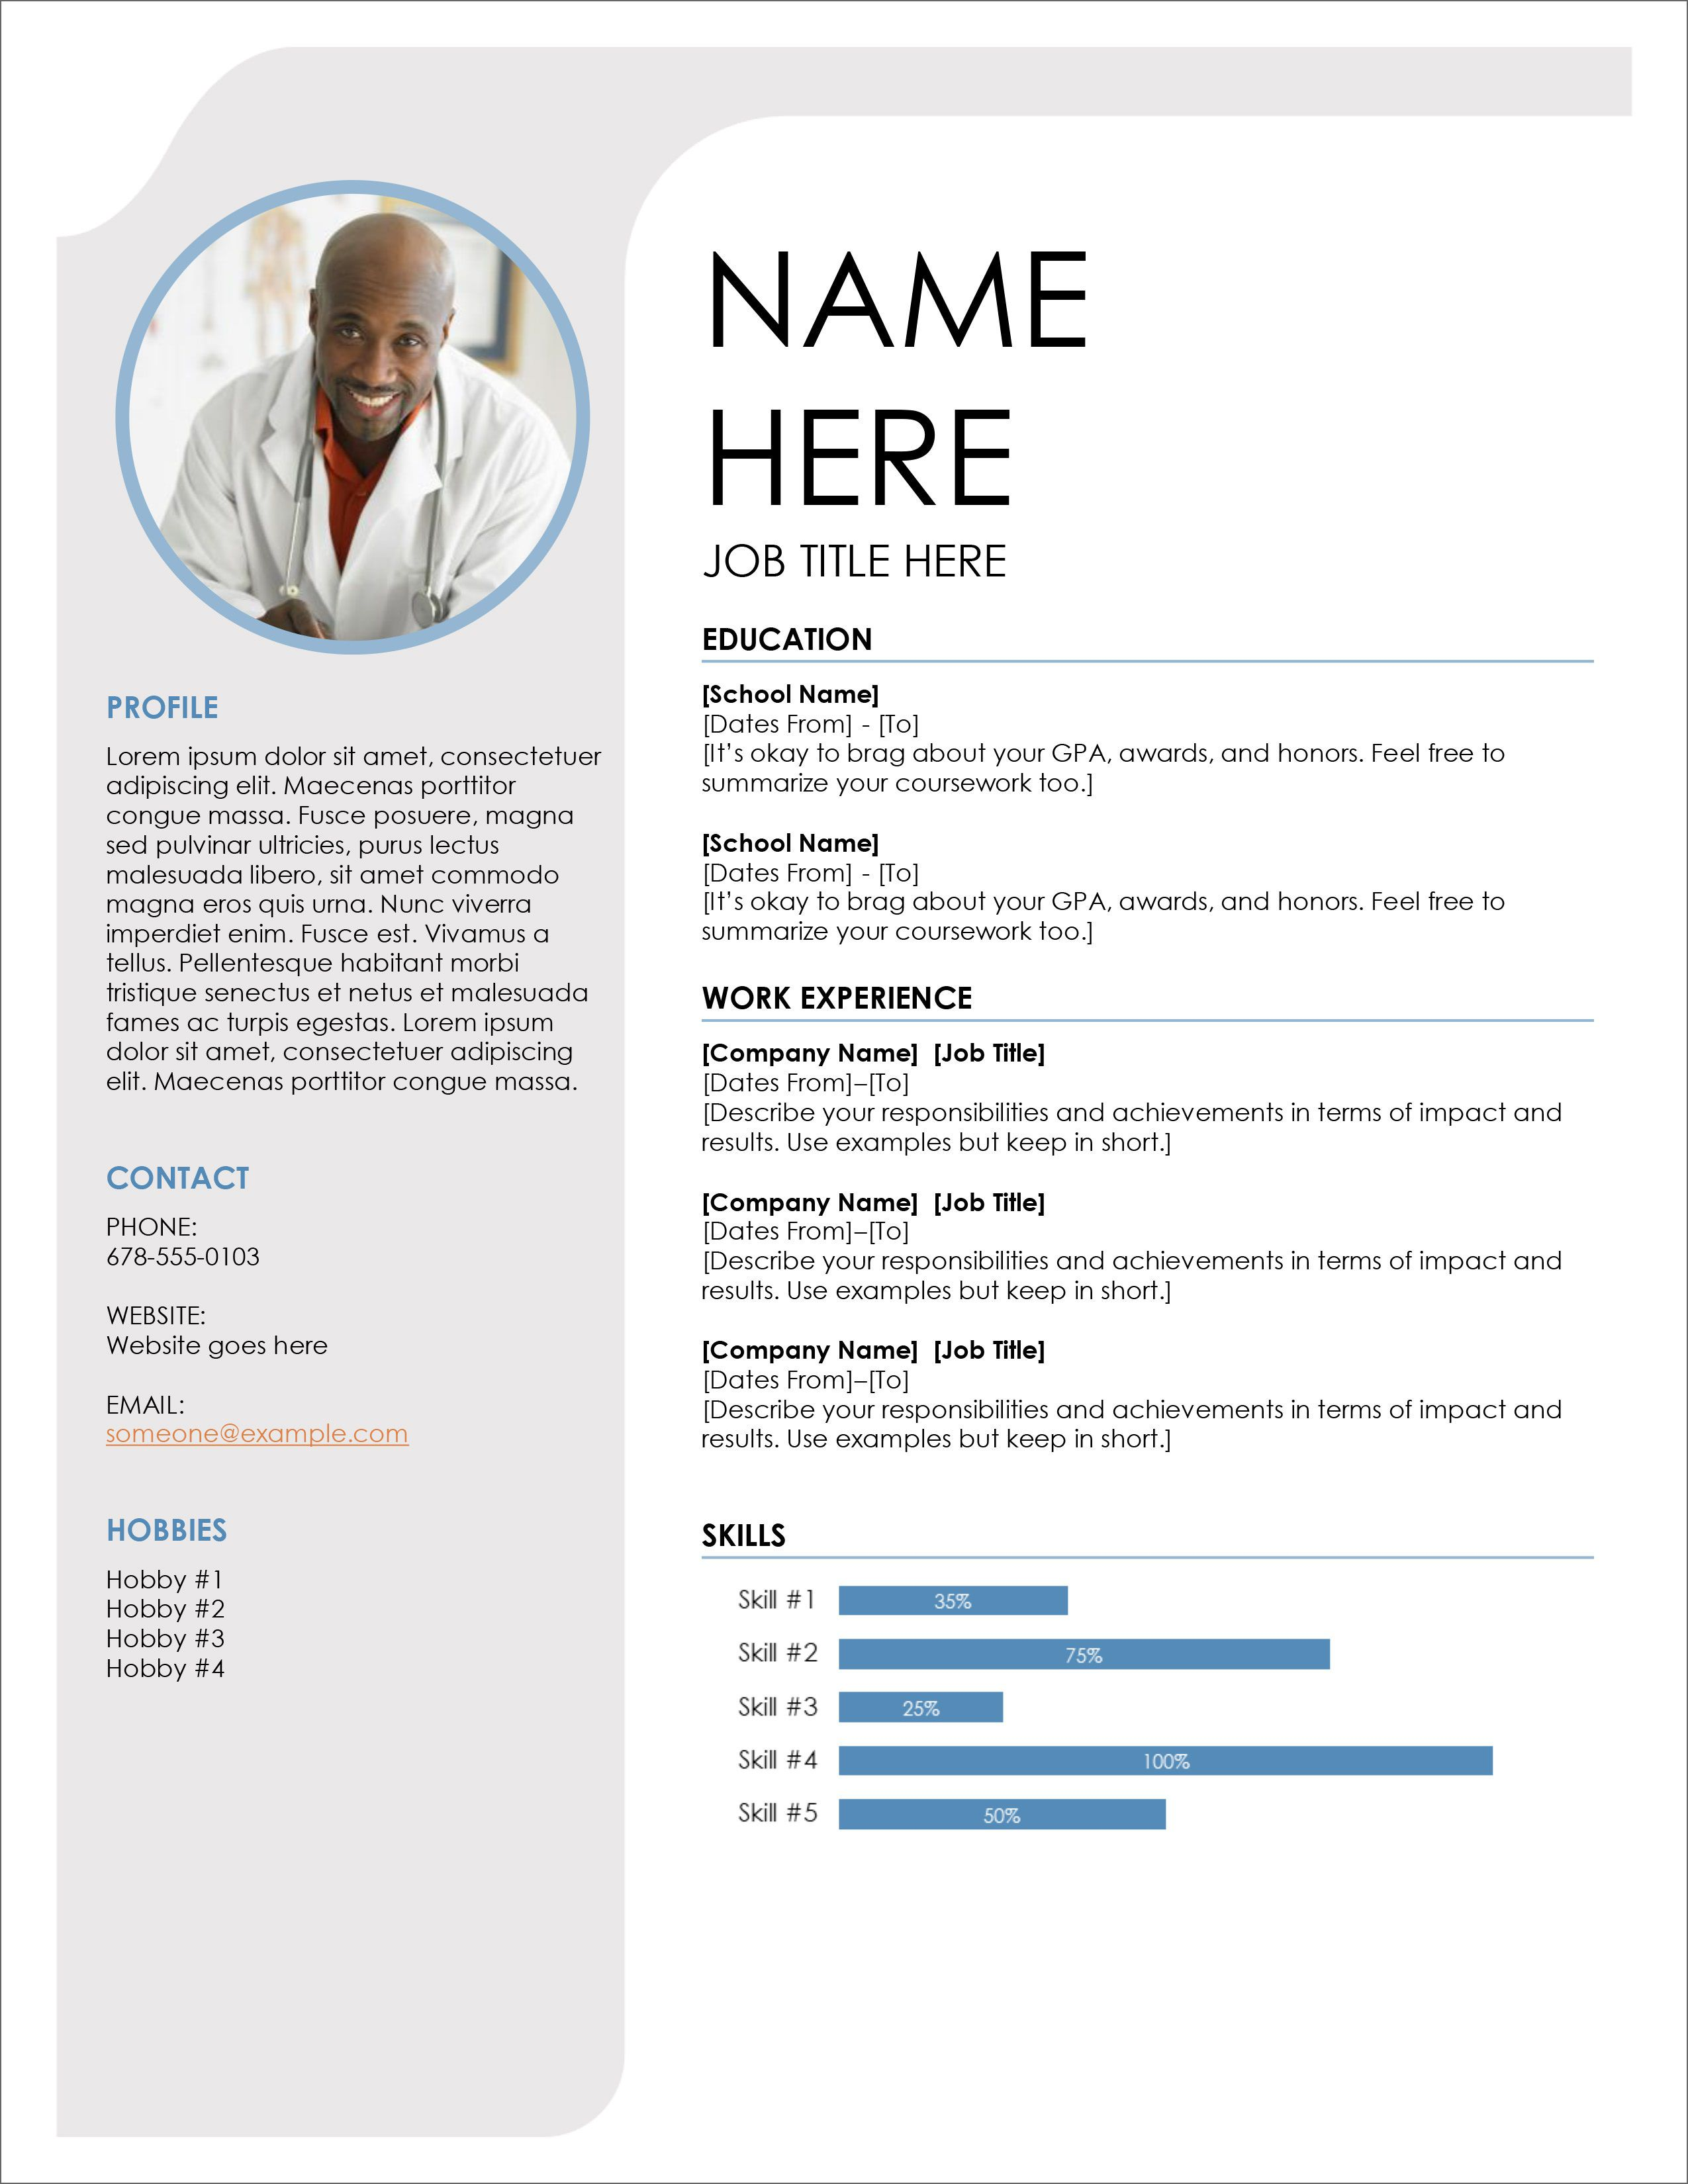 006 Remarkable Resume Template Word Free Download 2018 Photo  Modern CvFull